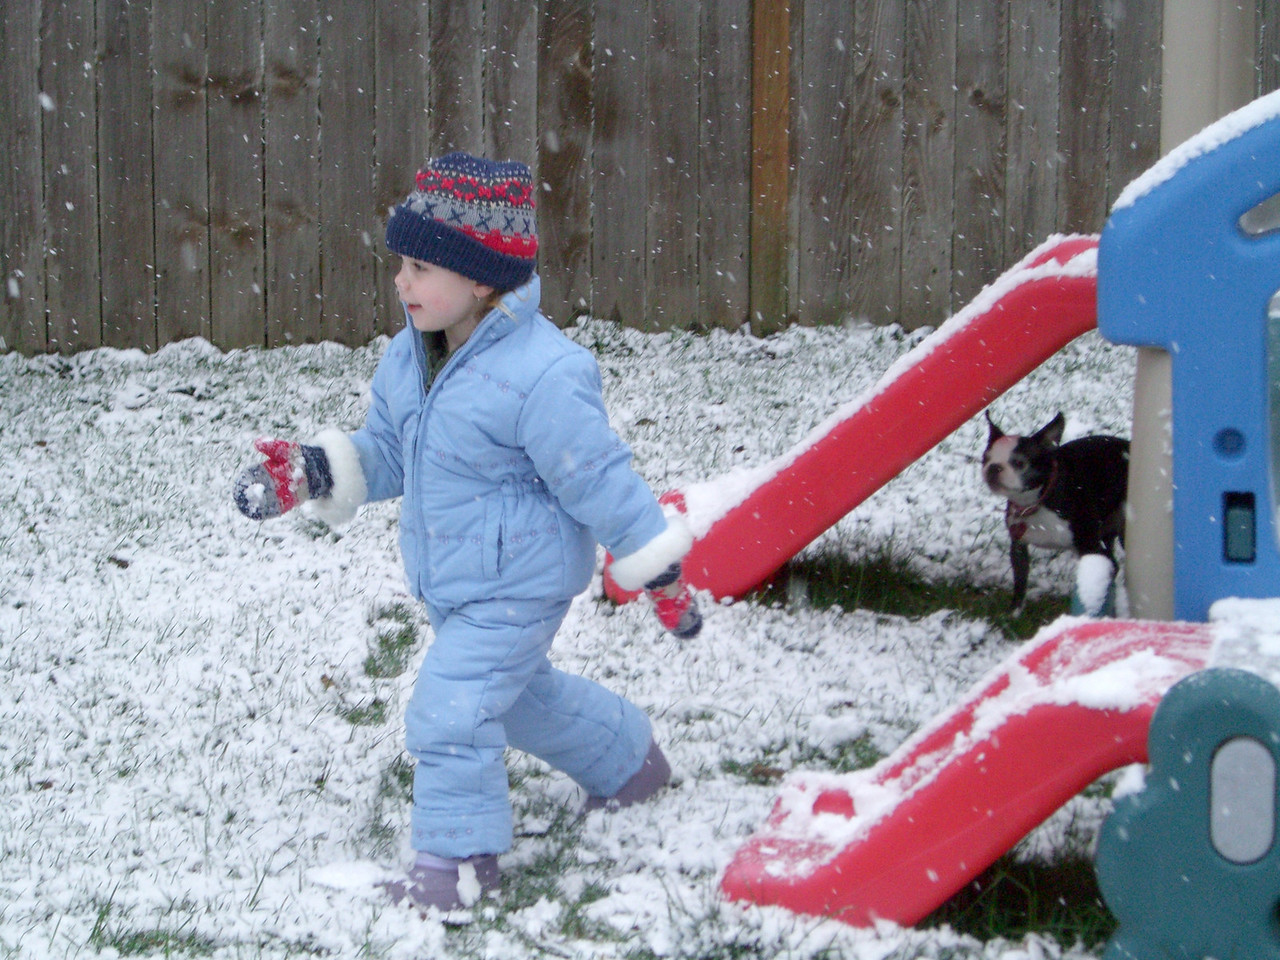 Kimber and Chloe playing in the snow.